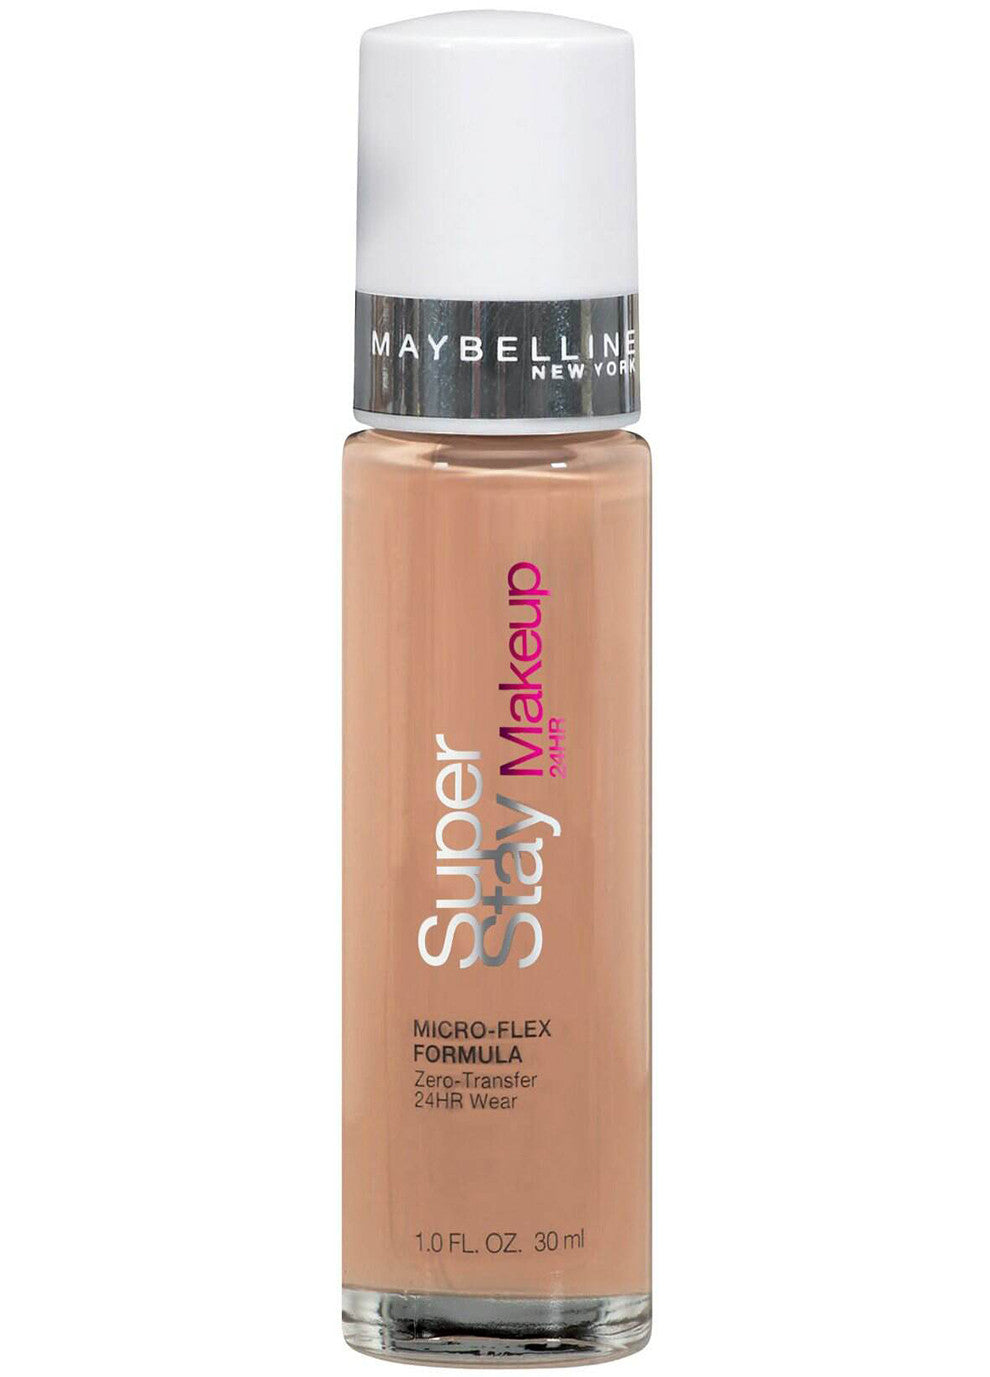 Maybelline New York Super Stay 24 Hour Makeup # Caramel